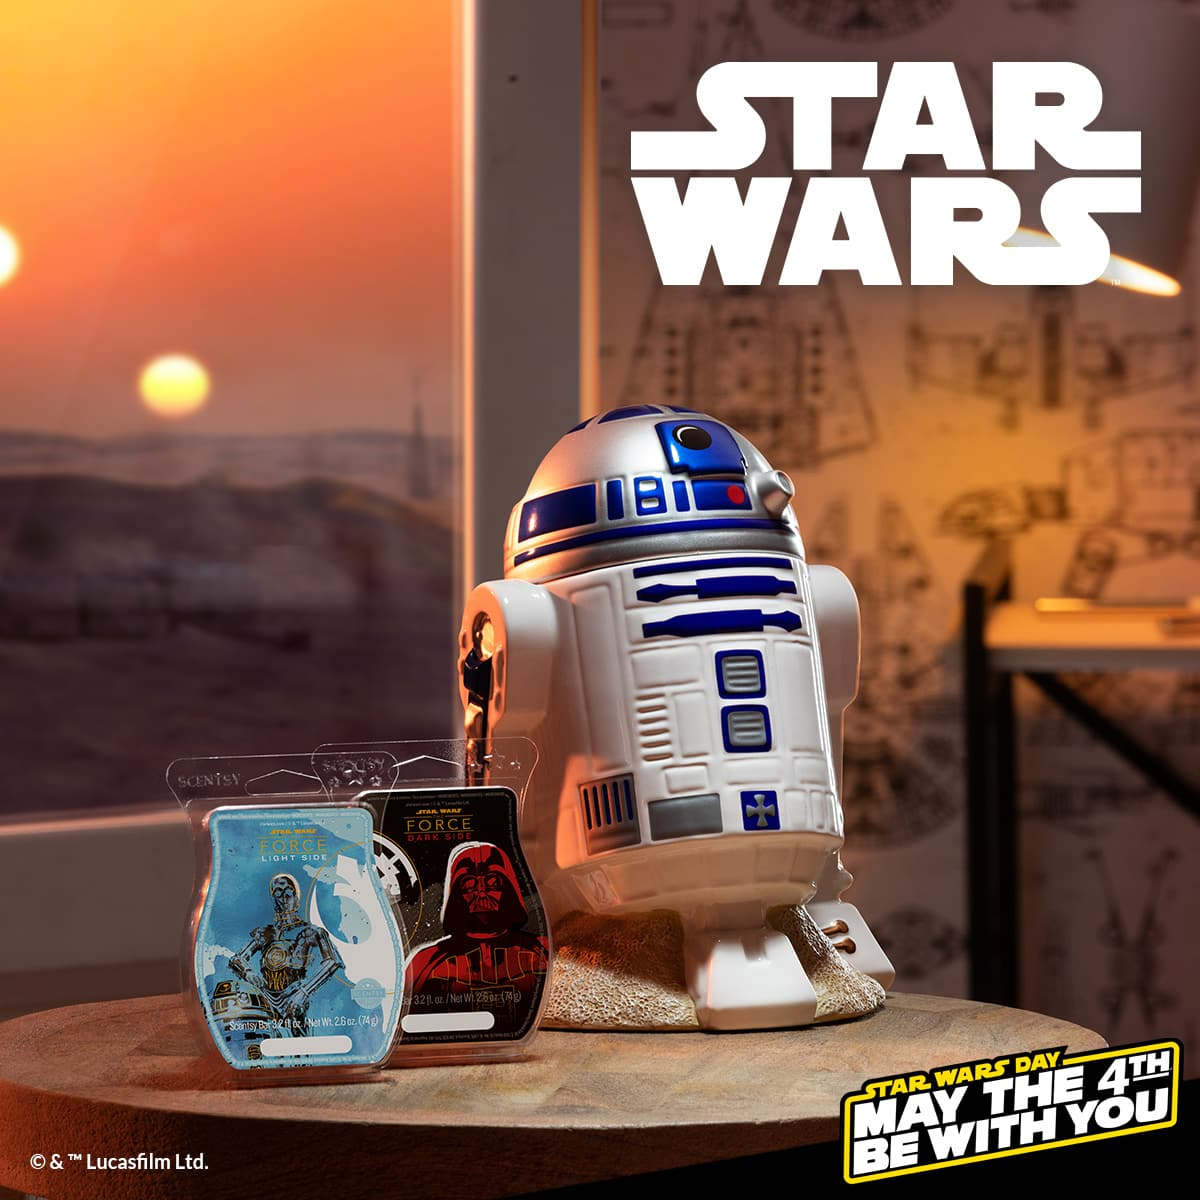 Star Wars™ – Scentsy Collection | R2-D2 Scentsy Warmer | Shop Now